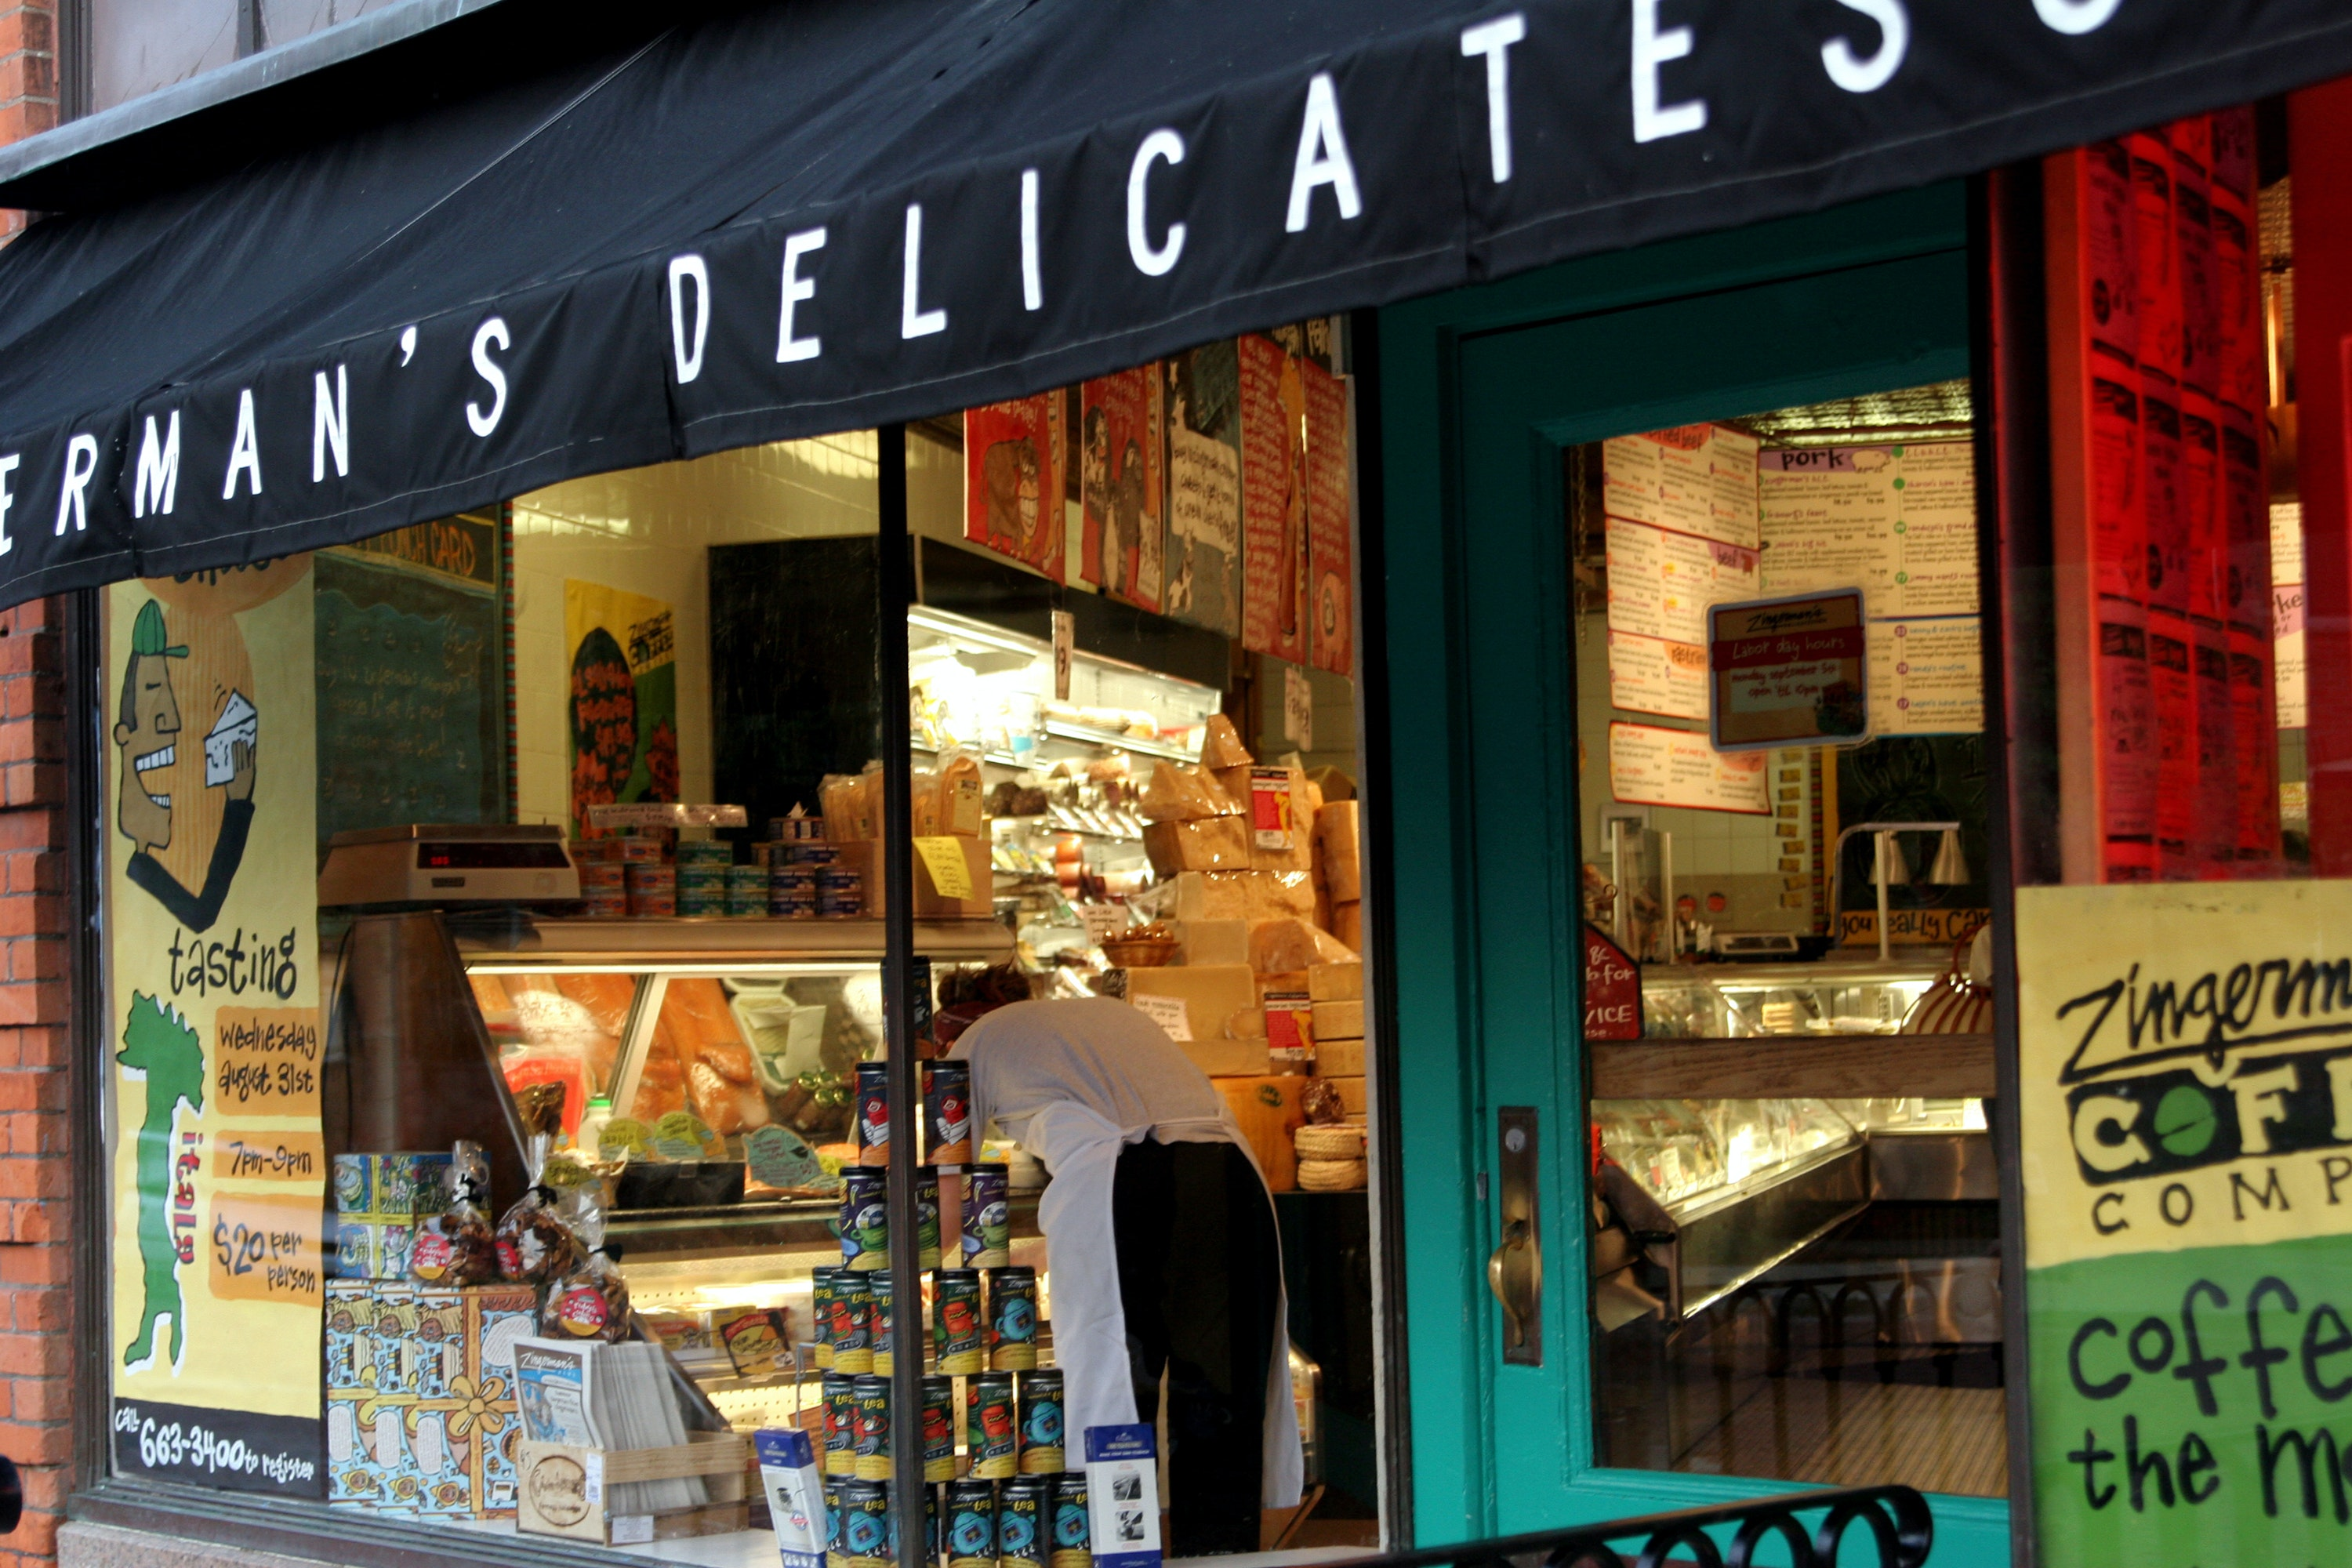 Zingerman's Delicatessen is a favorite of University of Michigan students and Ann Arbor residents.